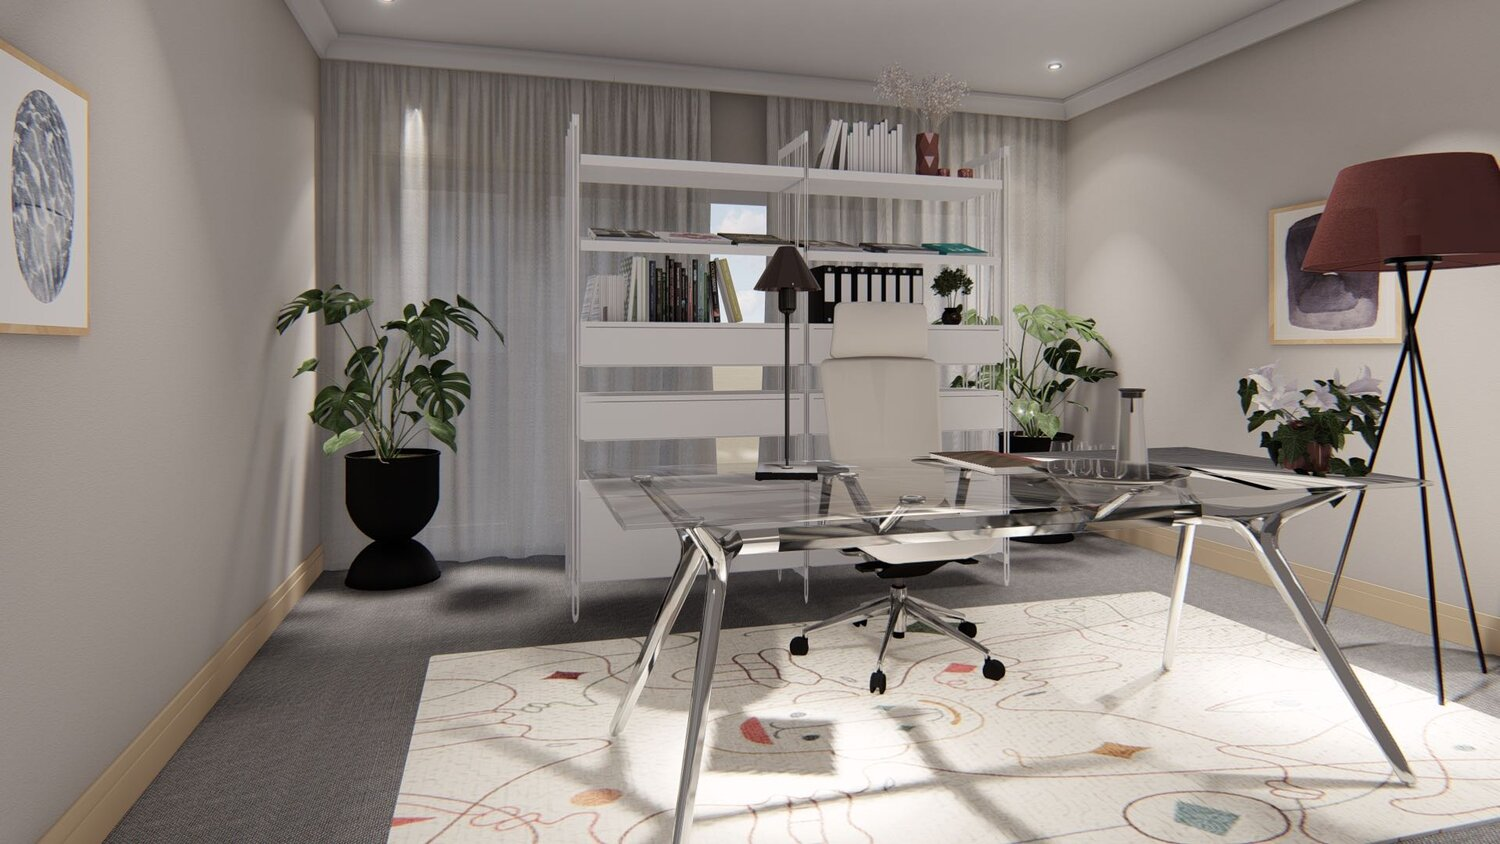 Inspired by Nature: How to Make Office Space More Eco-Friendly